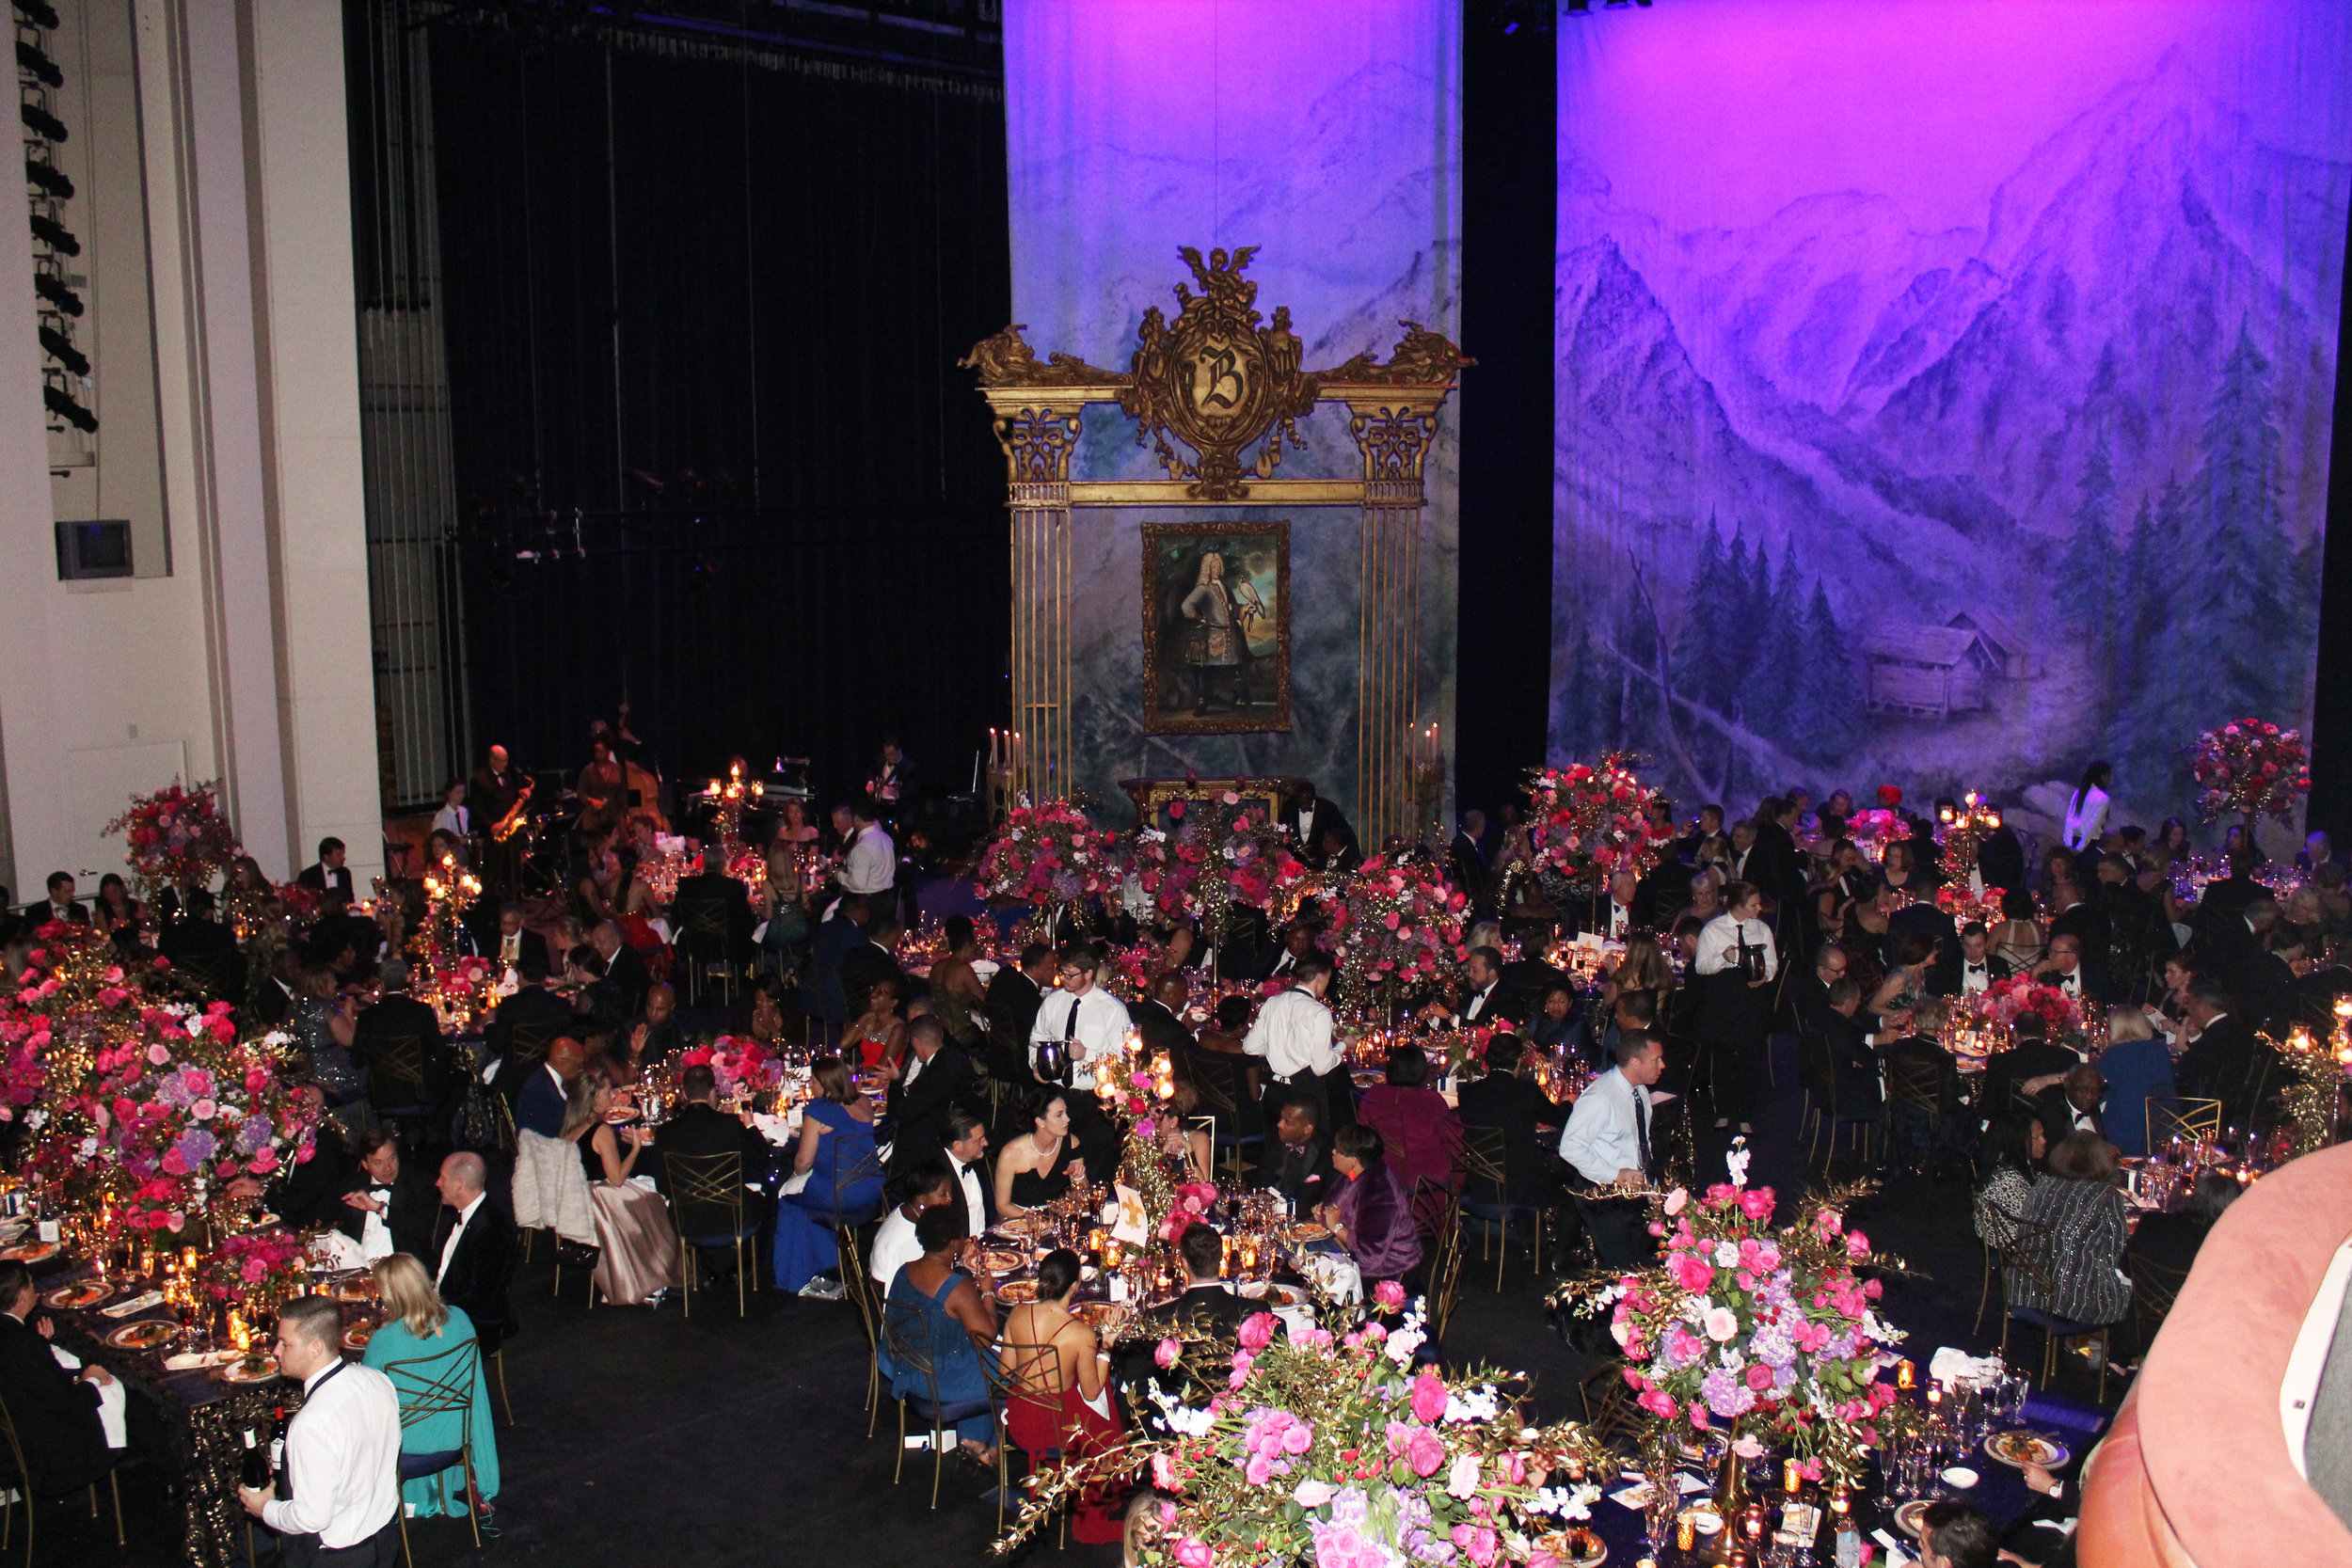 Gorgeous decor from John Lupton Events amid the scenery for Opera Carolina's season opening production of Donizetti's  Daughter of the Regiment